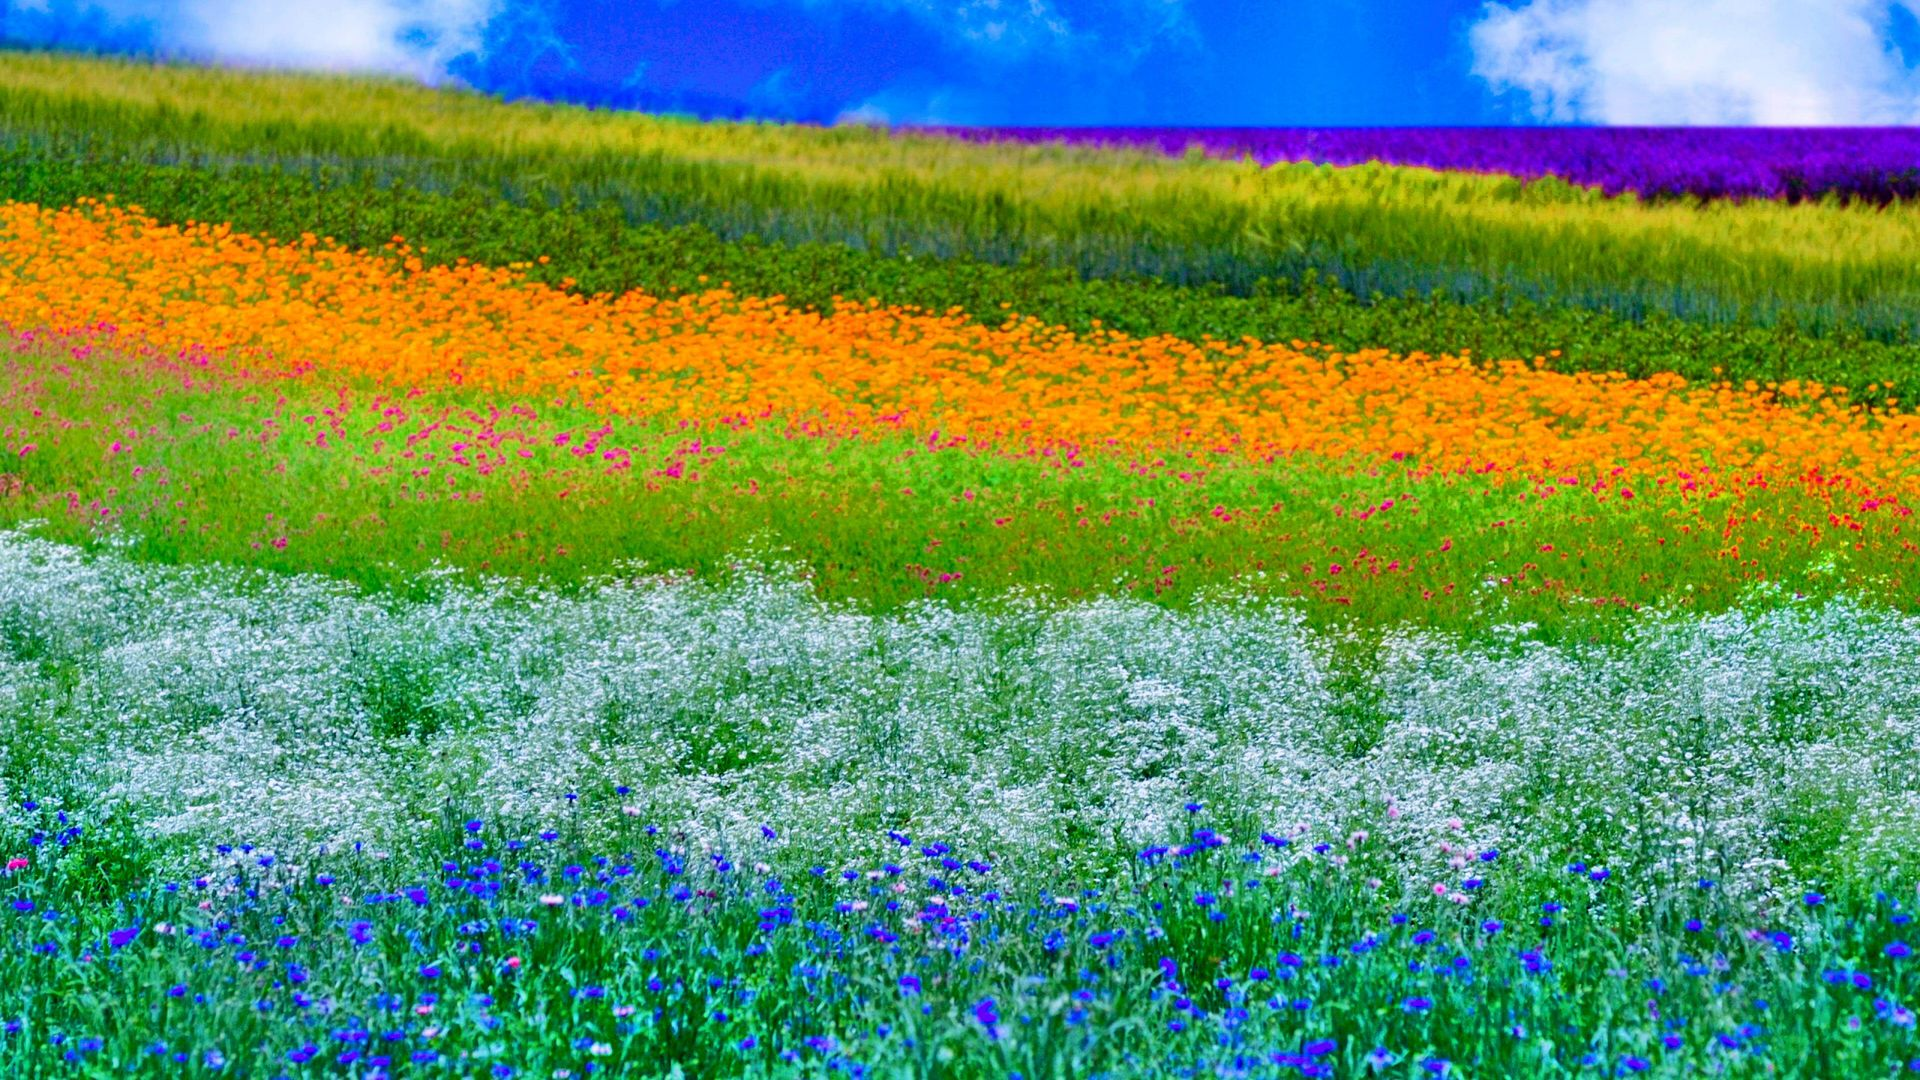 meadow,colorful,nature,spring,bounce,outpouring,roan,springiness,natural state,recoil,fountain,vernal,hayfield